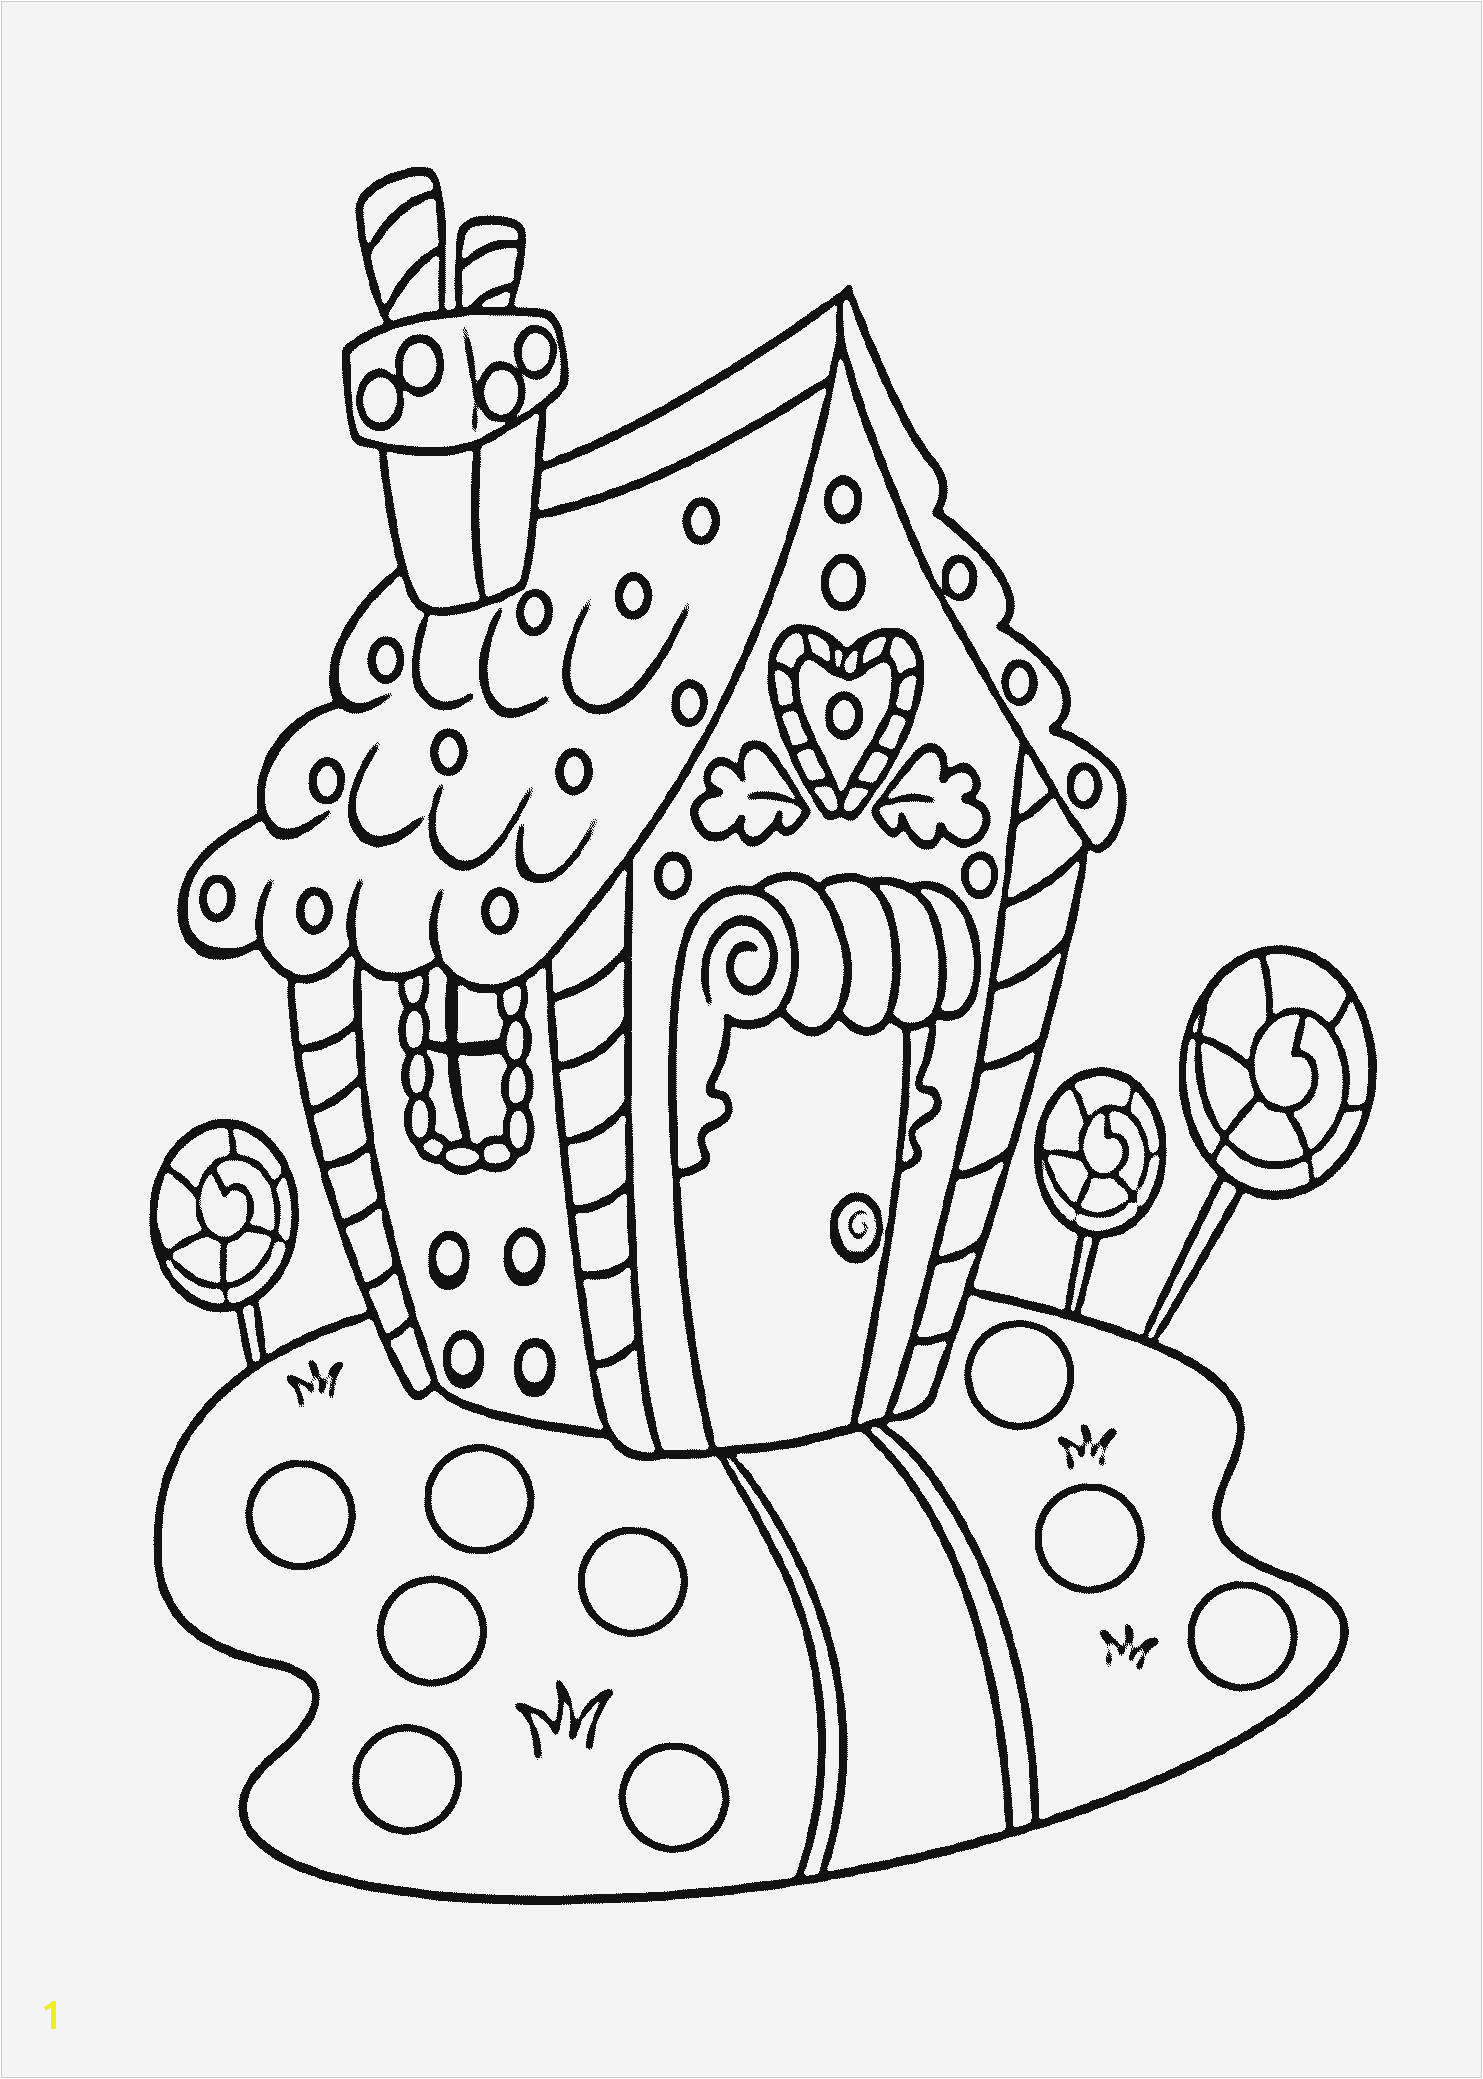 Free Coloring Book Pages Awesome s Fall Coloring Pages Free Printable Amazing Printable Cds 0d